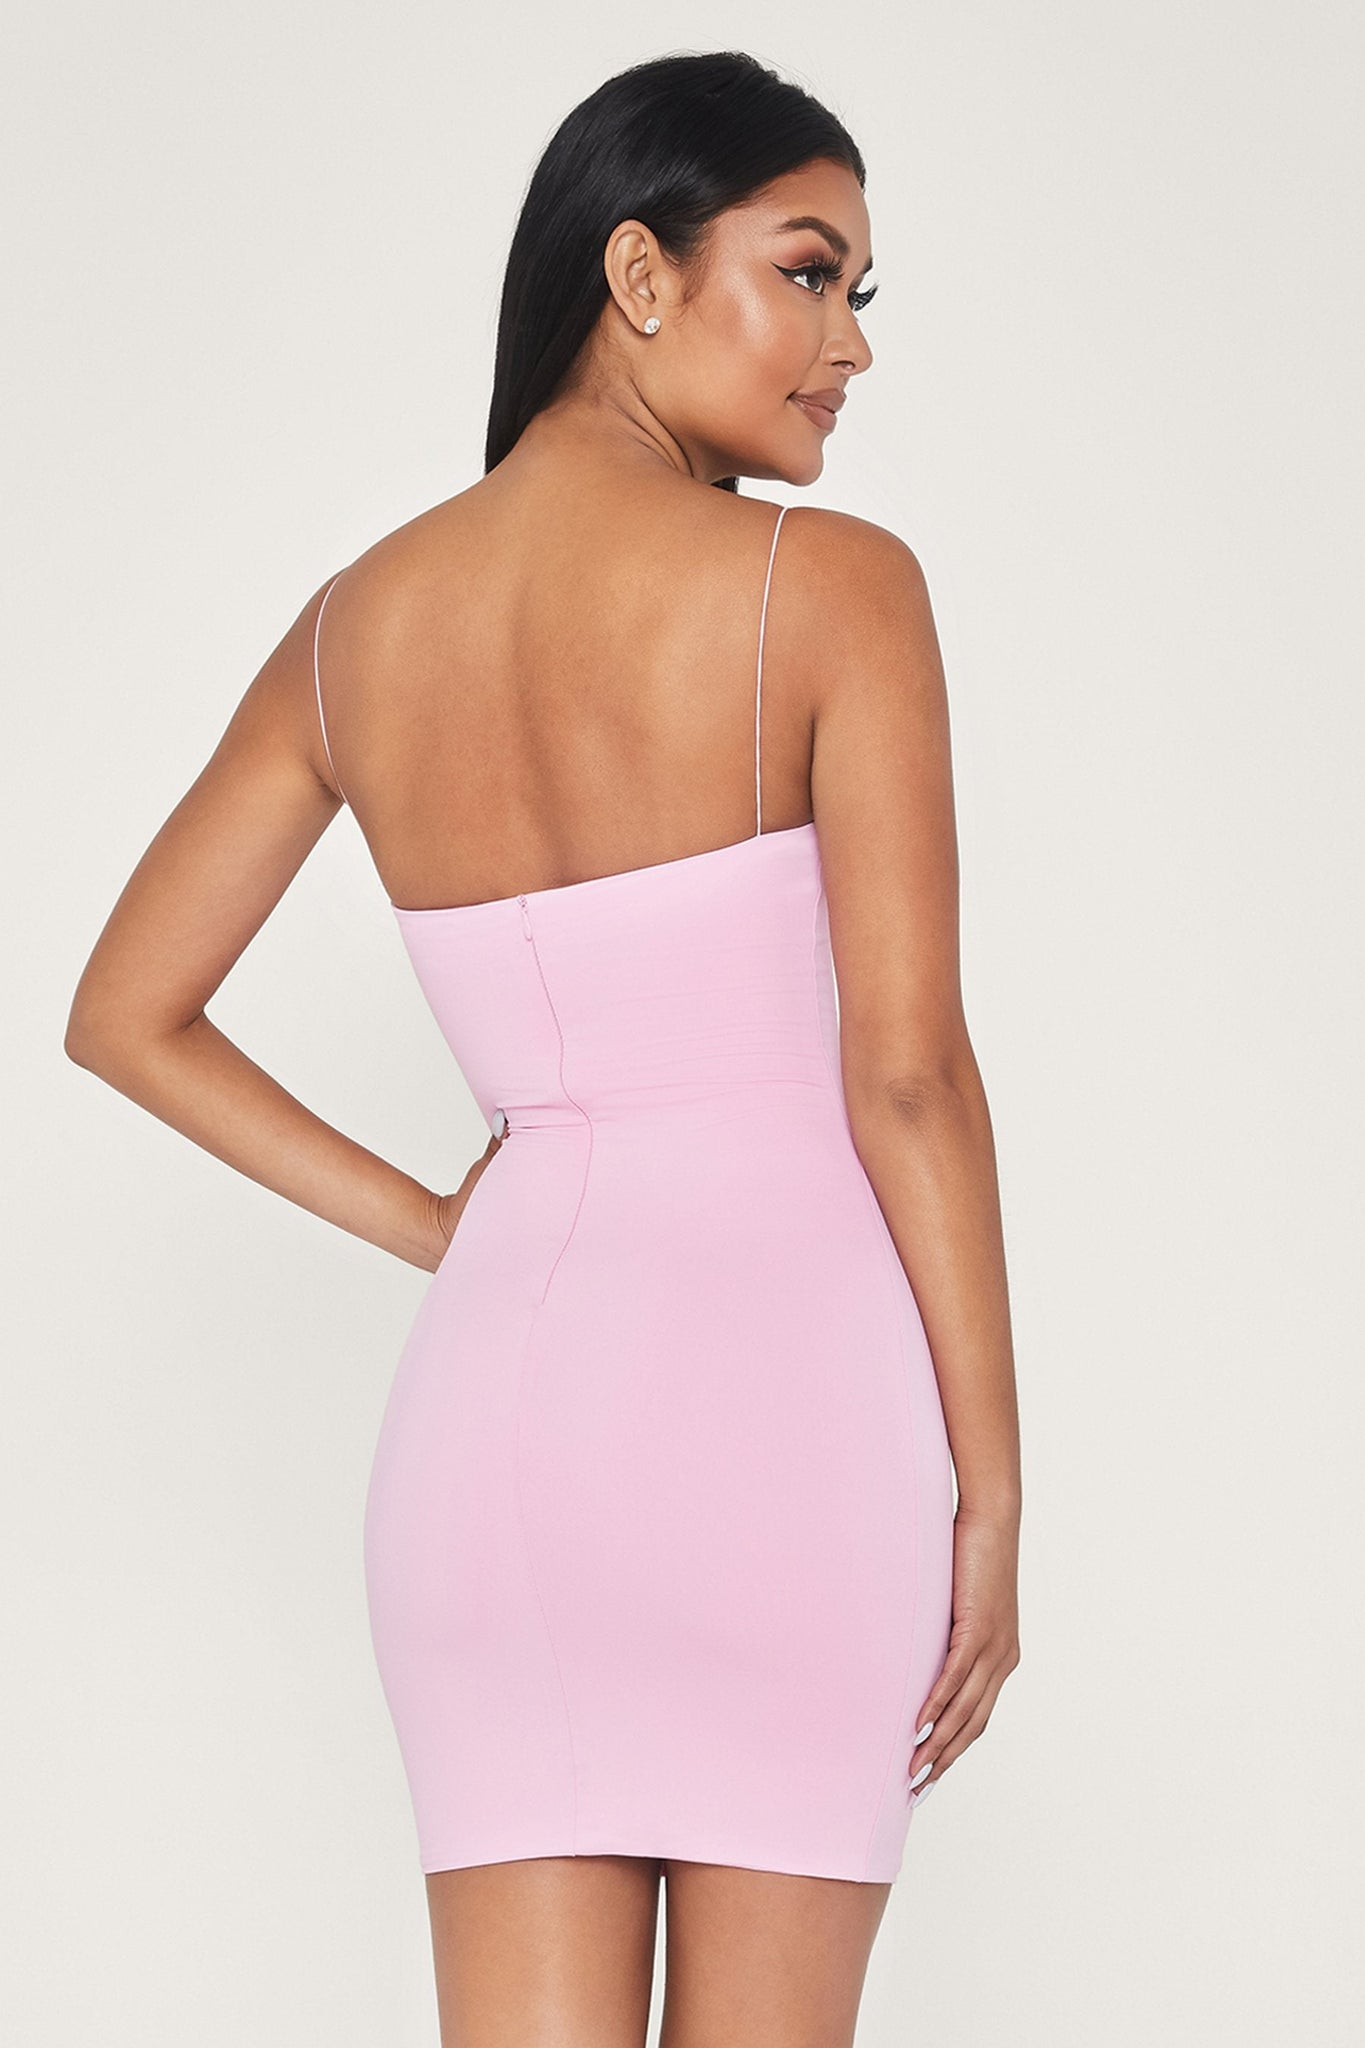 Mia Thin Strap Bodycon Mini Dress - Pink - MESHKI